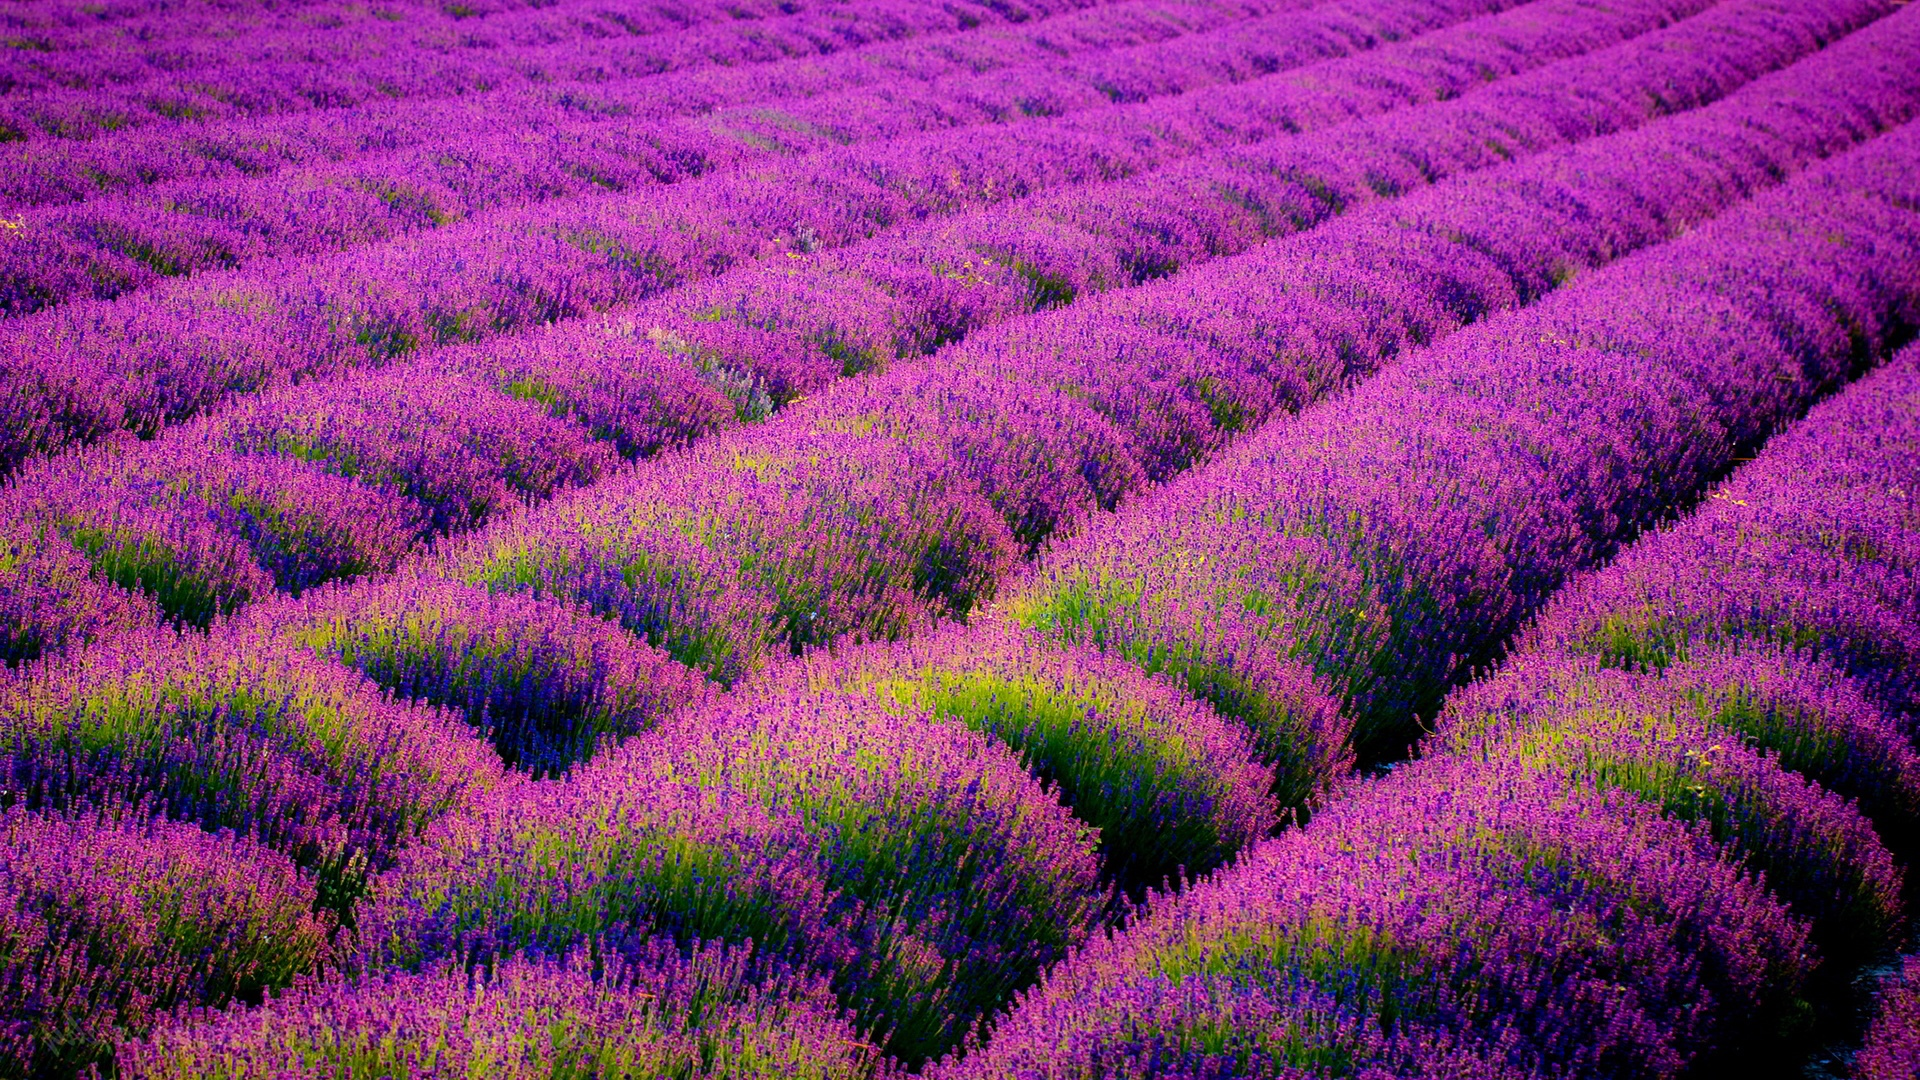 Download Beautiful Lavender Wallpaper 21778 1920x1080 Px